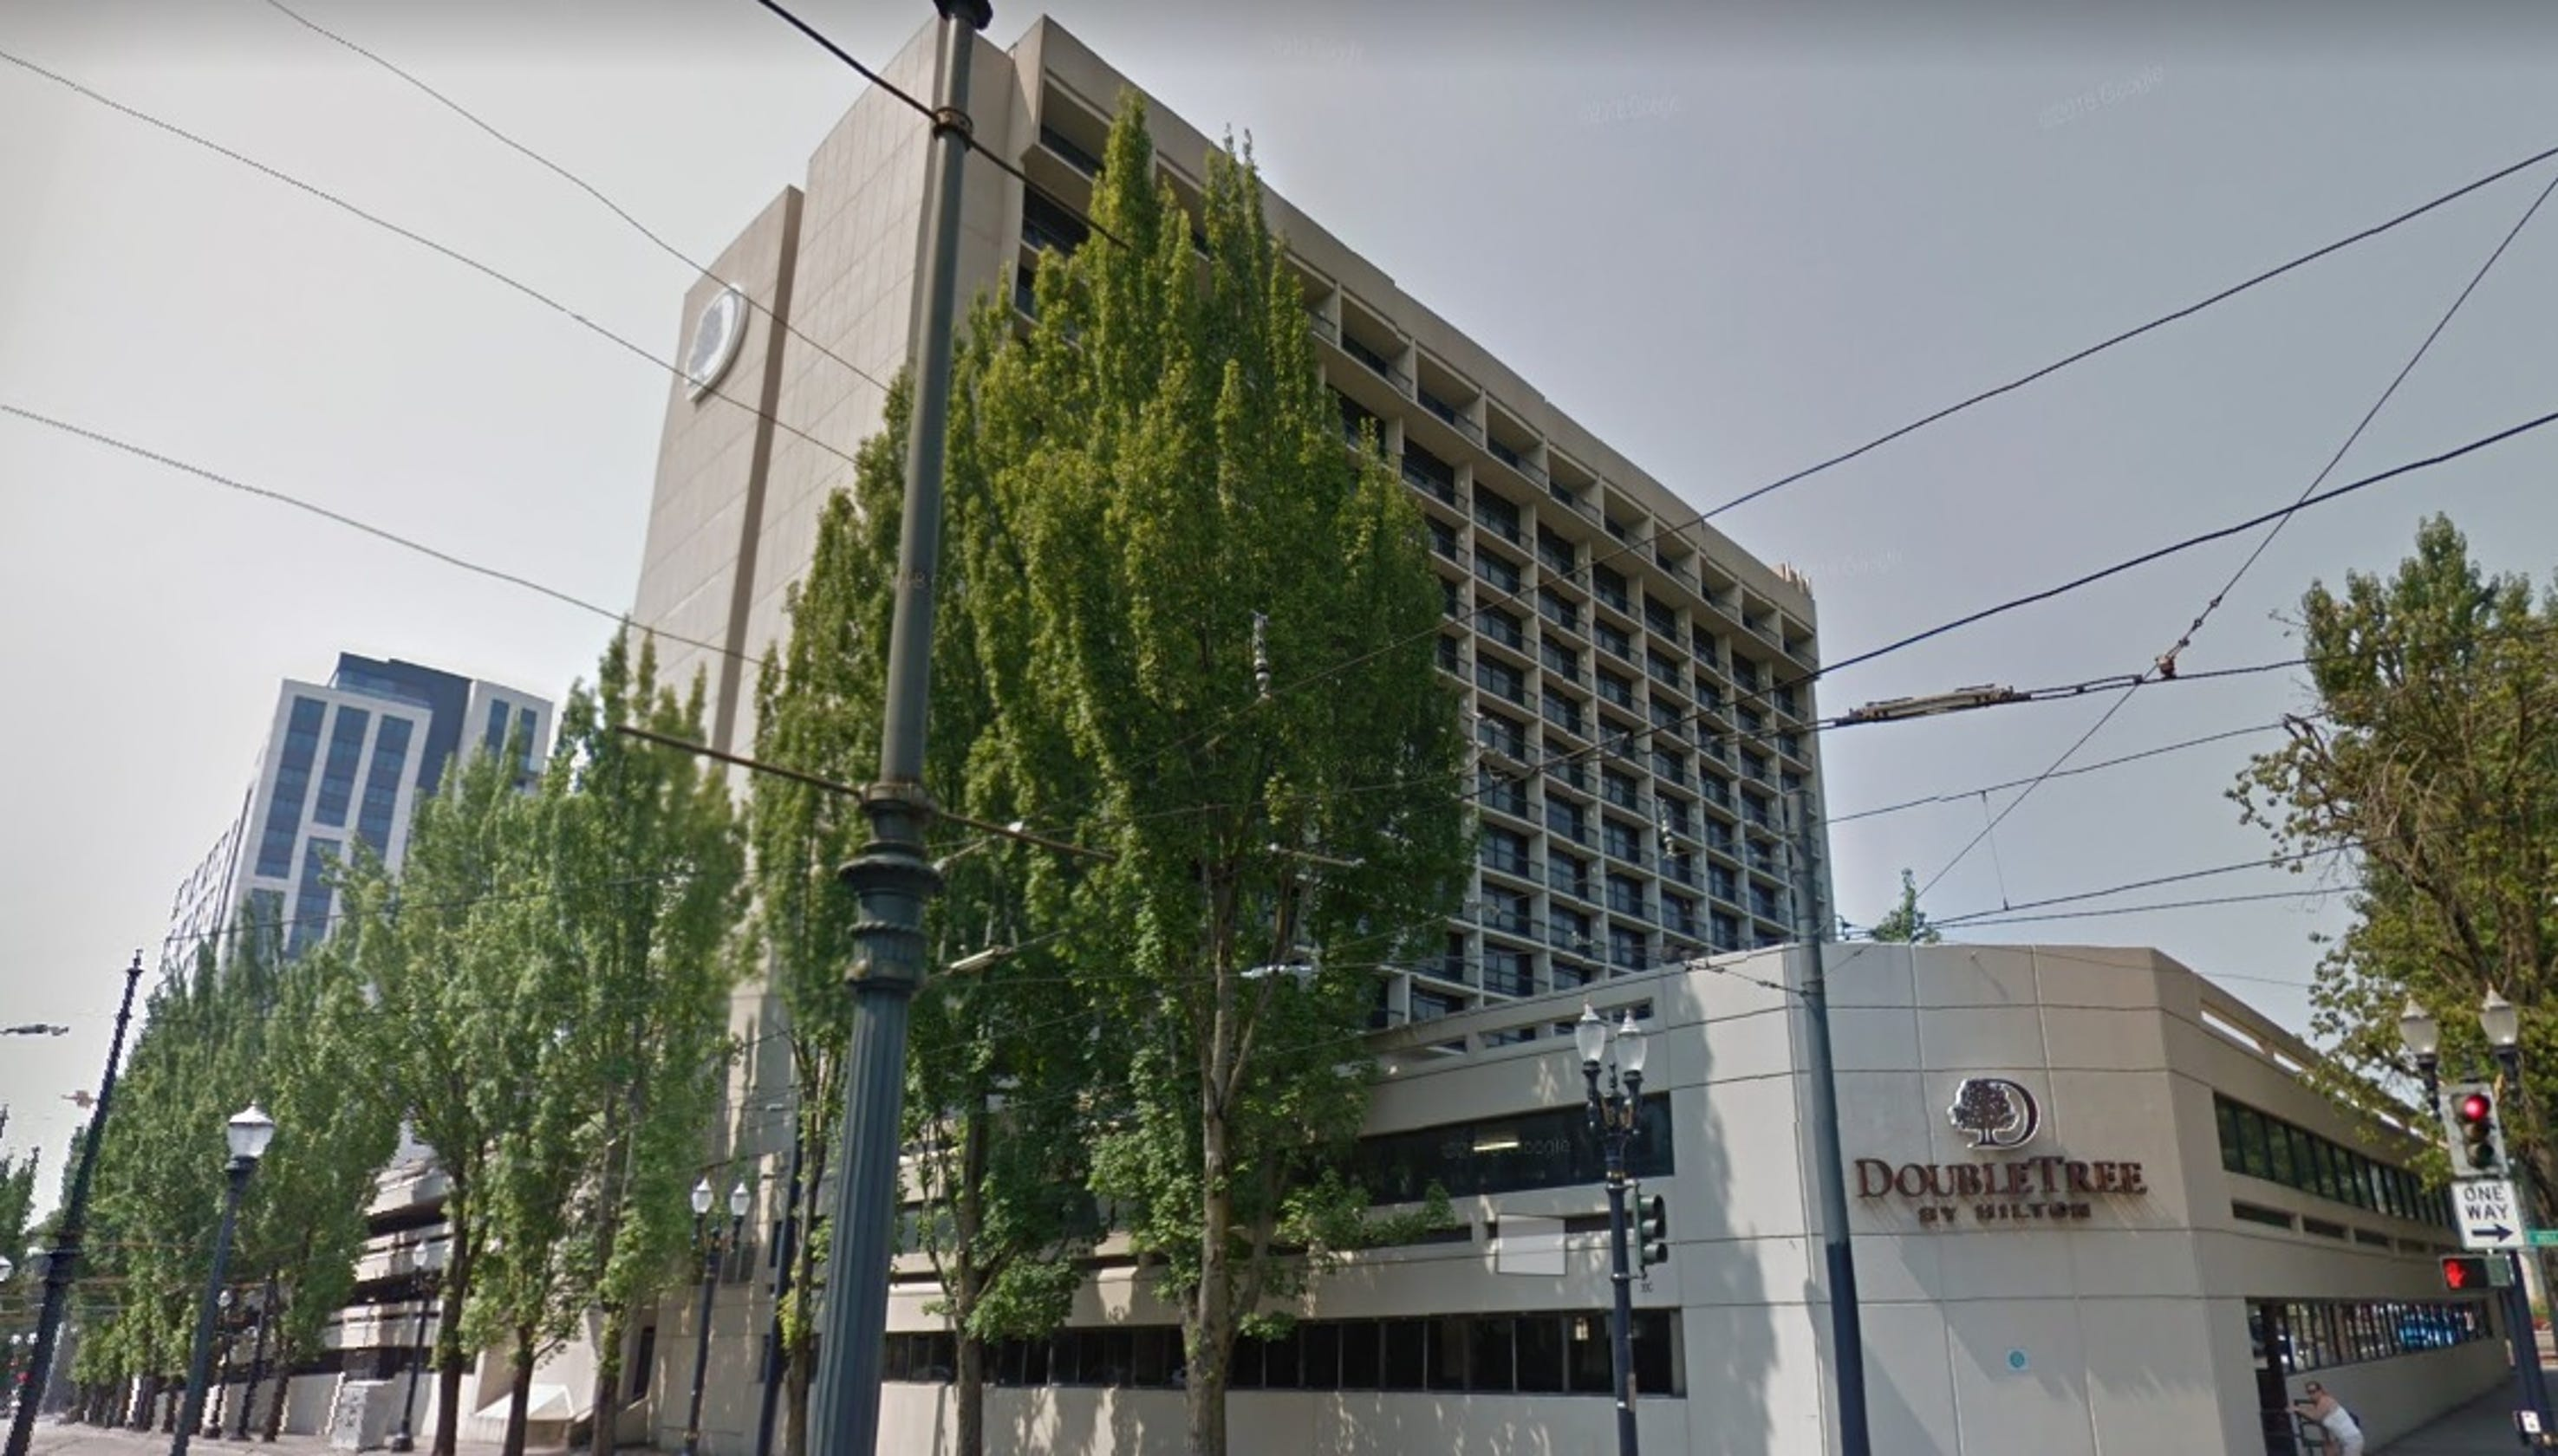 Hilton employees fired after being accused of racism in Oregon